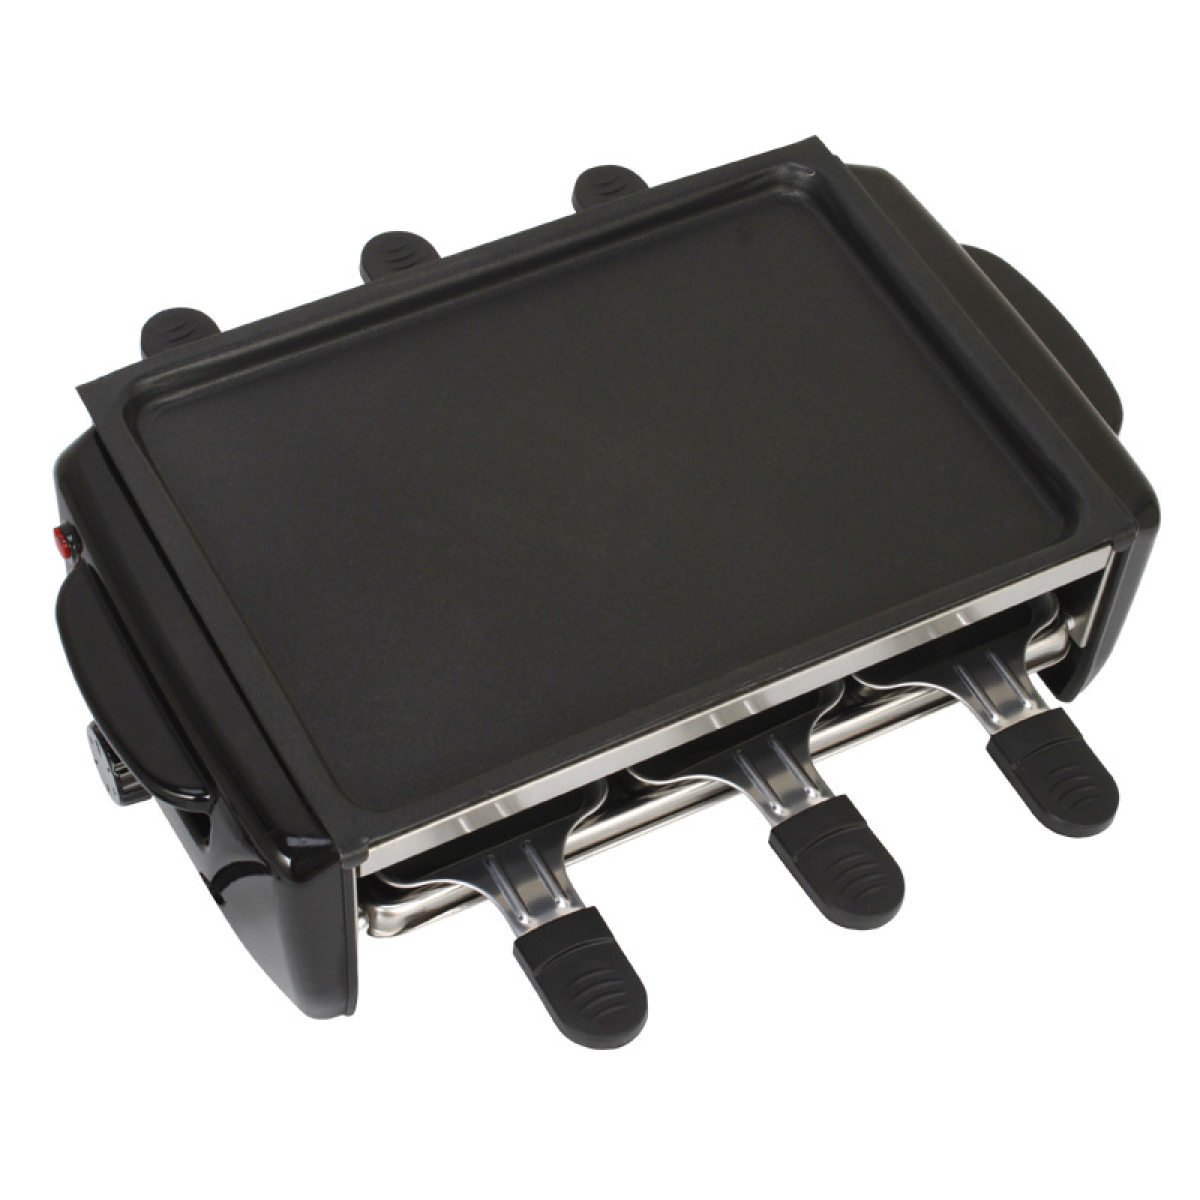 Korean Electric Oven Home Rauchfrei Barbecue Pan Haushalt Elektrische Grill Tray Rauchfrei Barbecue Plate Commercial Teppanyaki